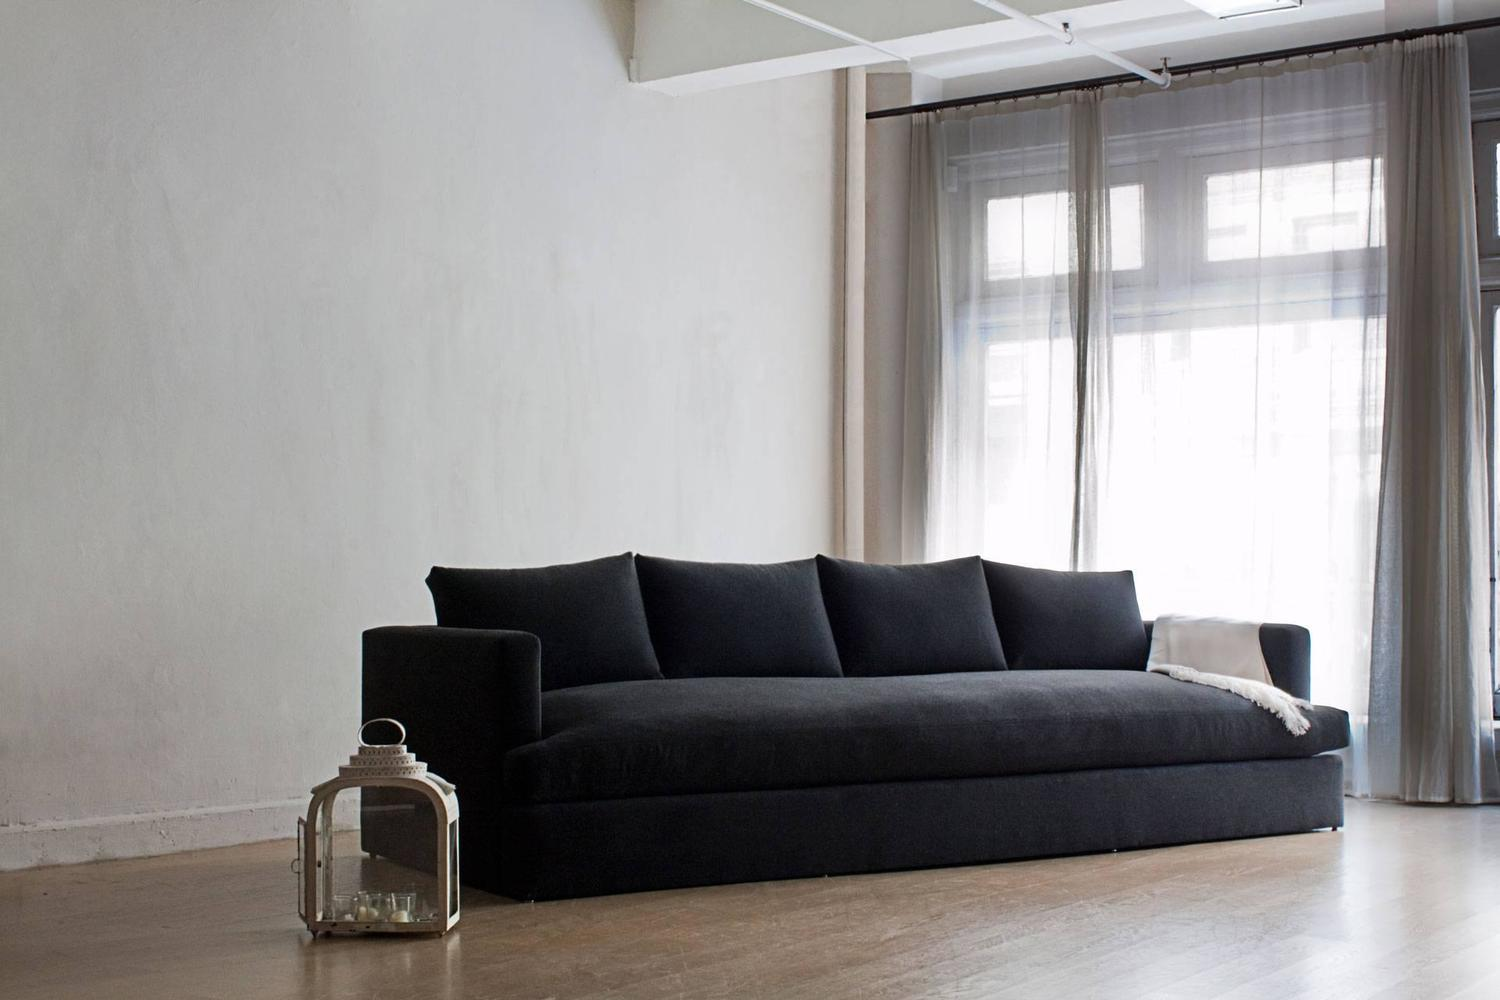 Contemporary Chelsea Square Deep Sofa, Custom and Made to Order by Dmitriy and Co For Sale at ...